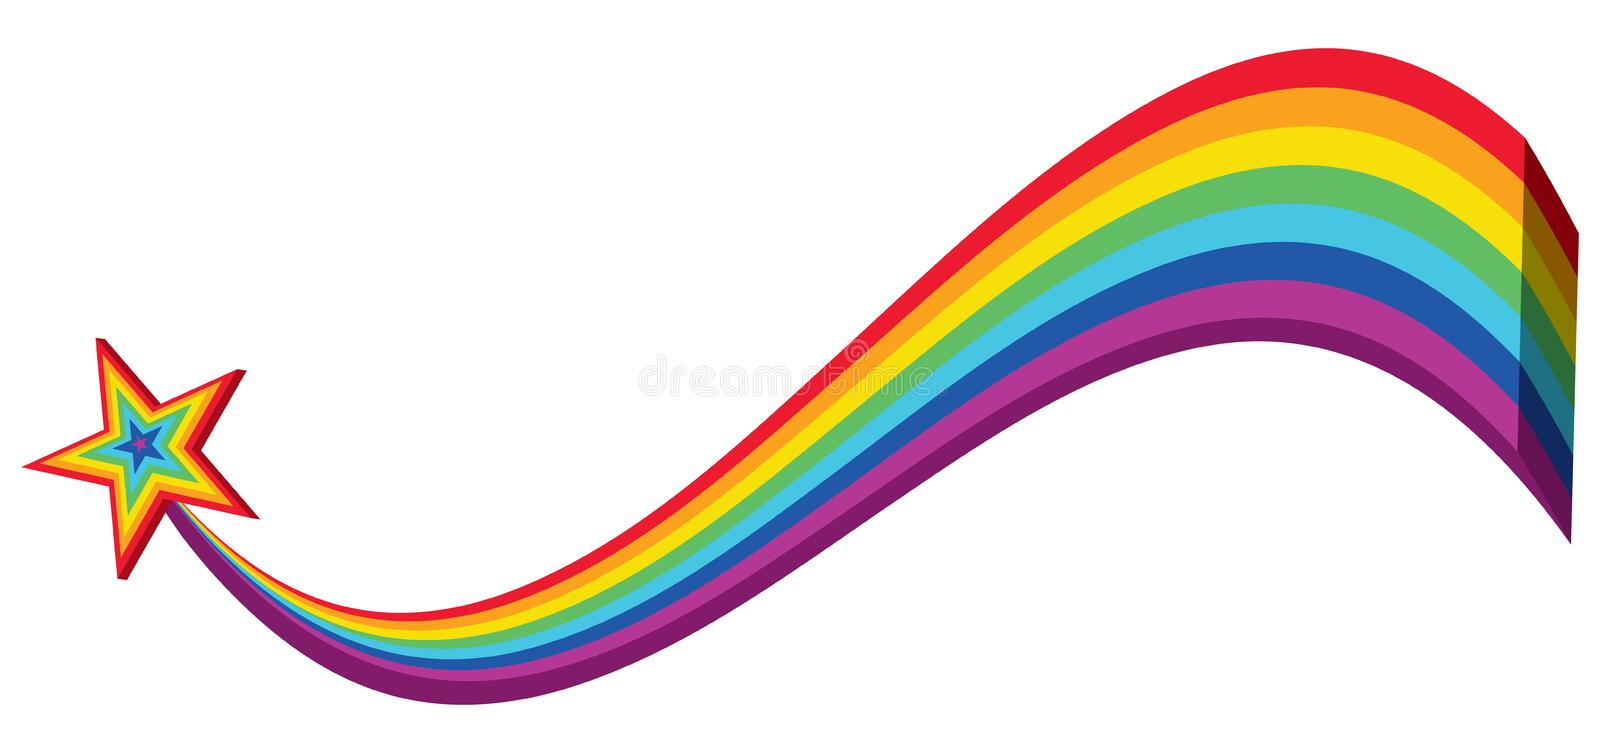 3d rainbow line star wave banner. This illustration is design and drawing 3d rainbow line star with wave style in banner size on white color background stock illustration